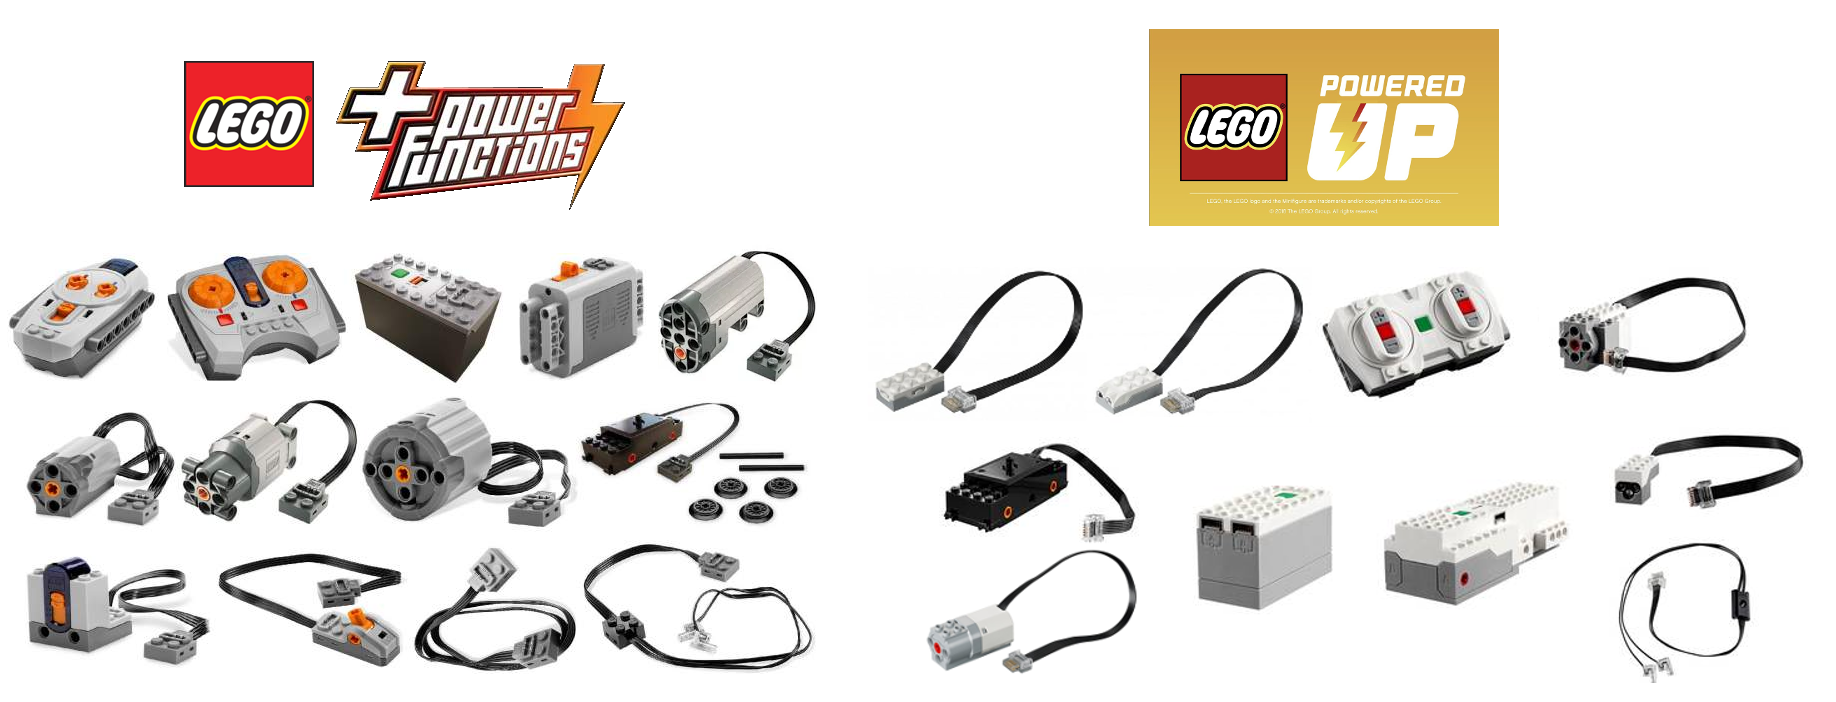 LEGO ® TECHNIC POWER FUNCTIONS ricevitore a infrarossi